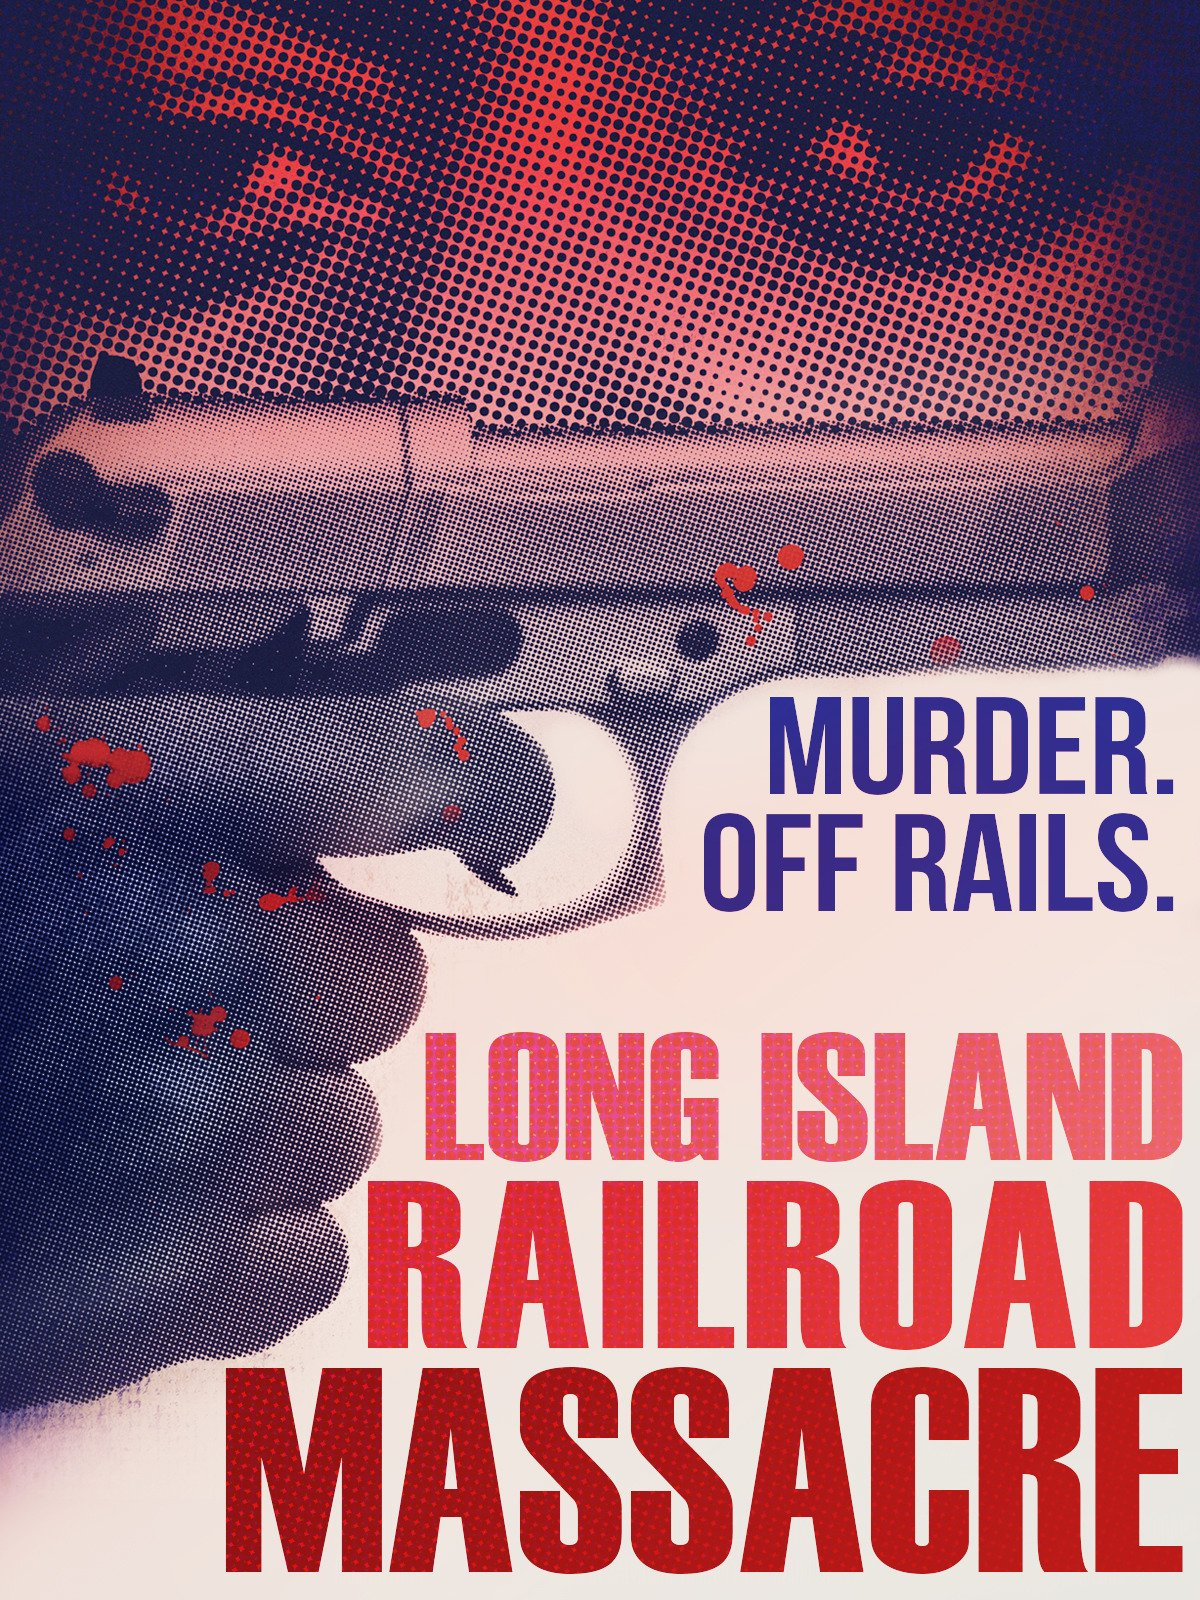 Long Island Railroad Massacre